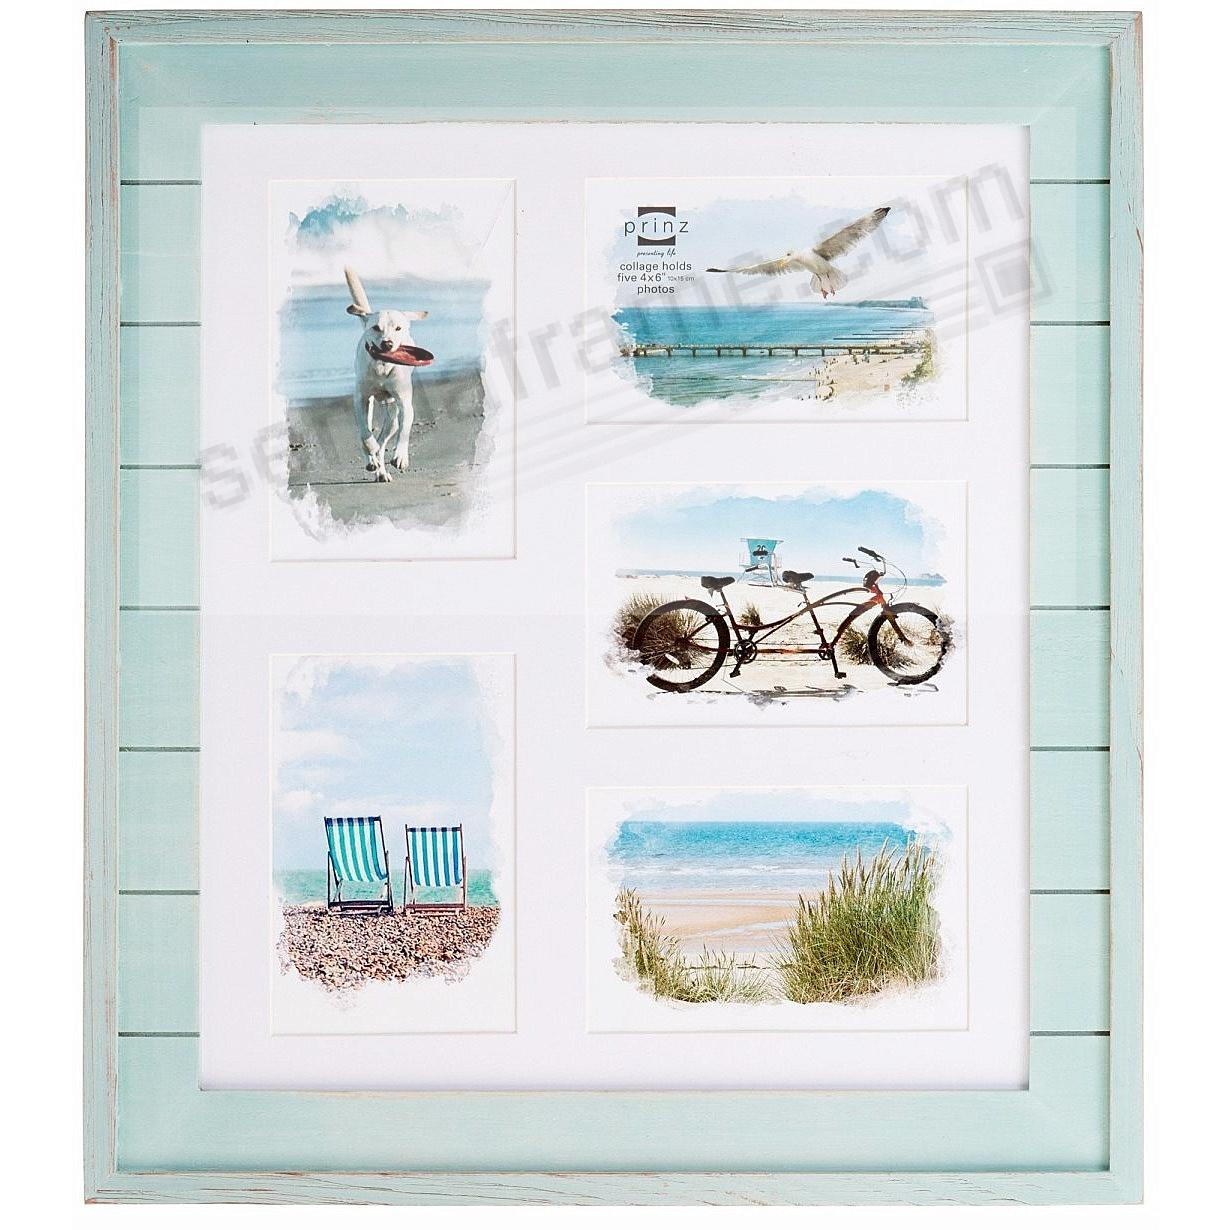 SEASIDE Aquamarine-stain wood 5/4x6 collage frame by Prinz - Picture ...